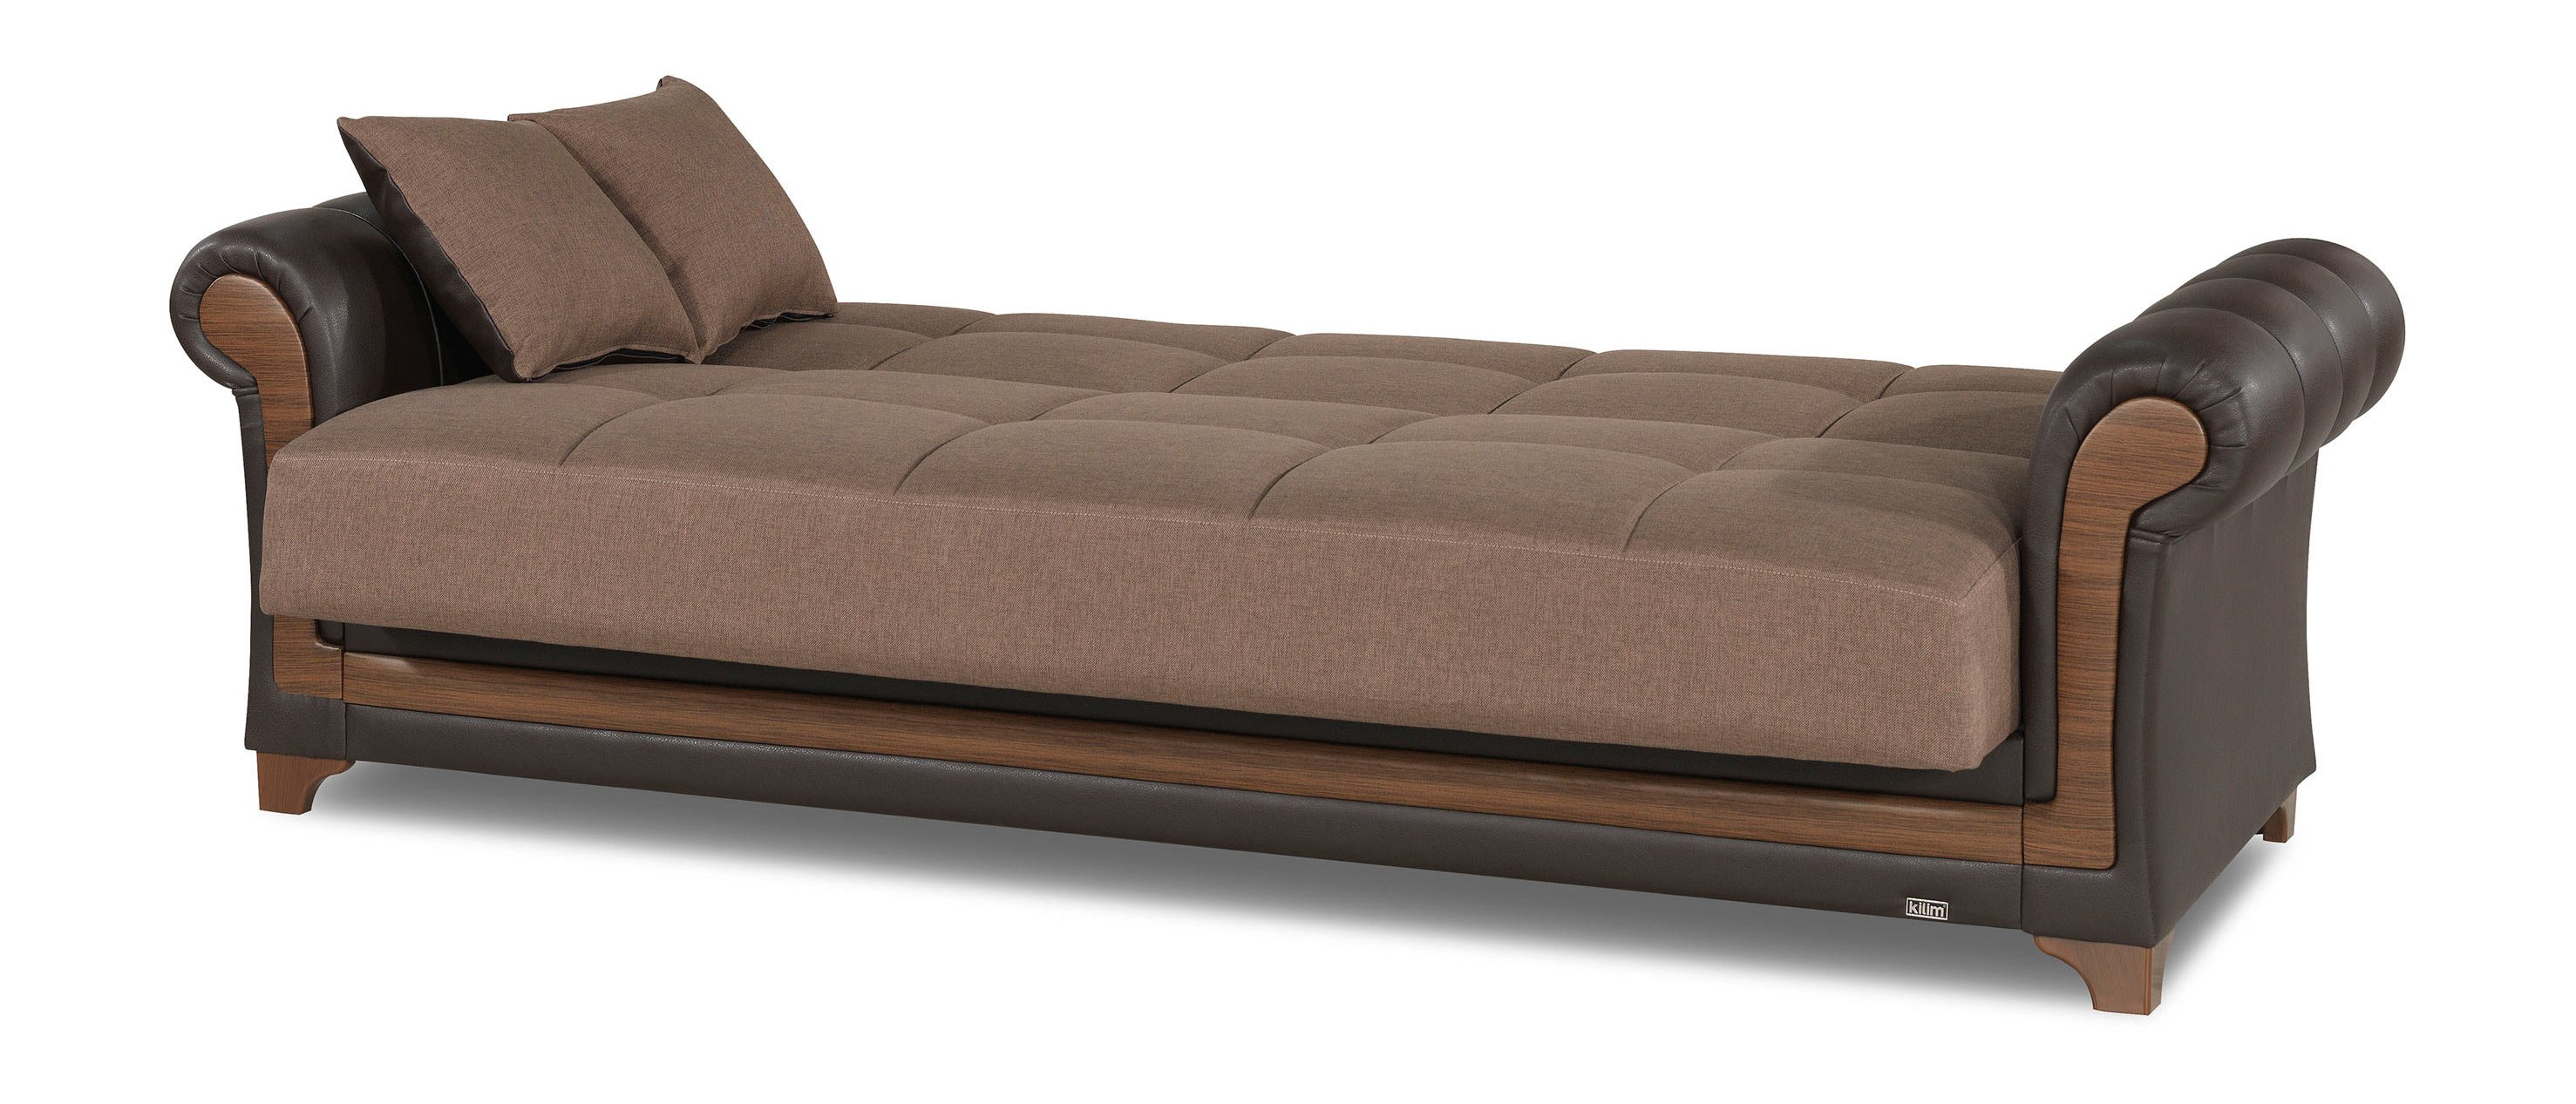 Dream decor brown convertible sofa bed by casamode for Divan convertible